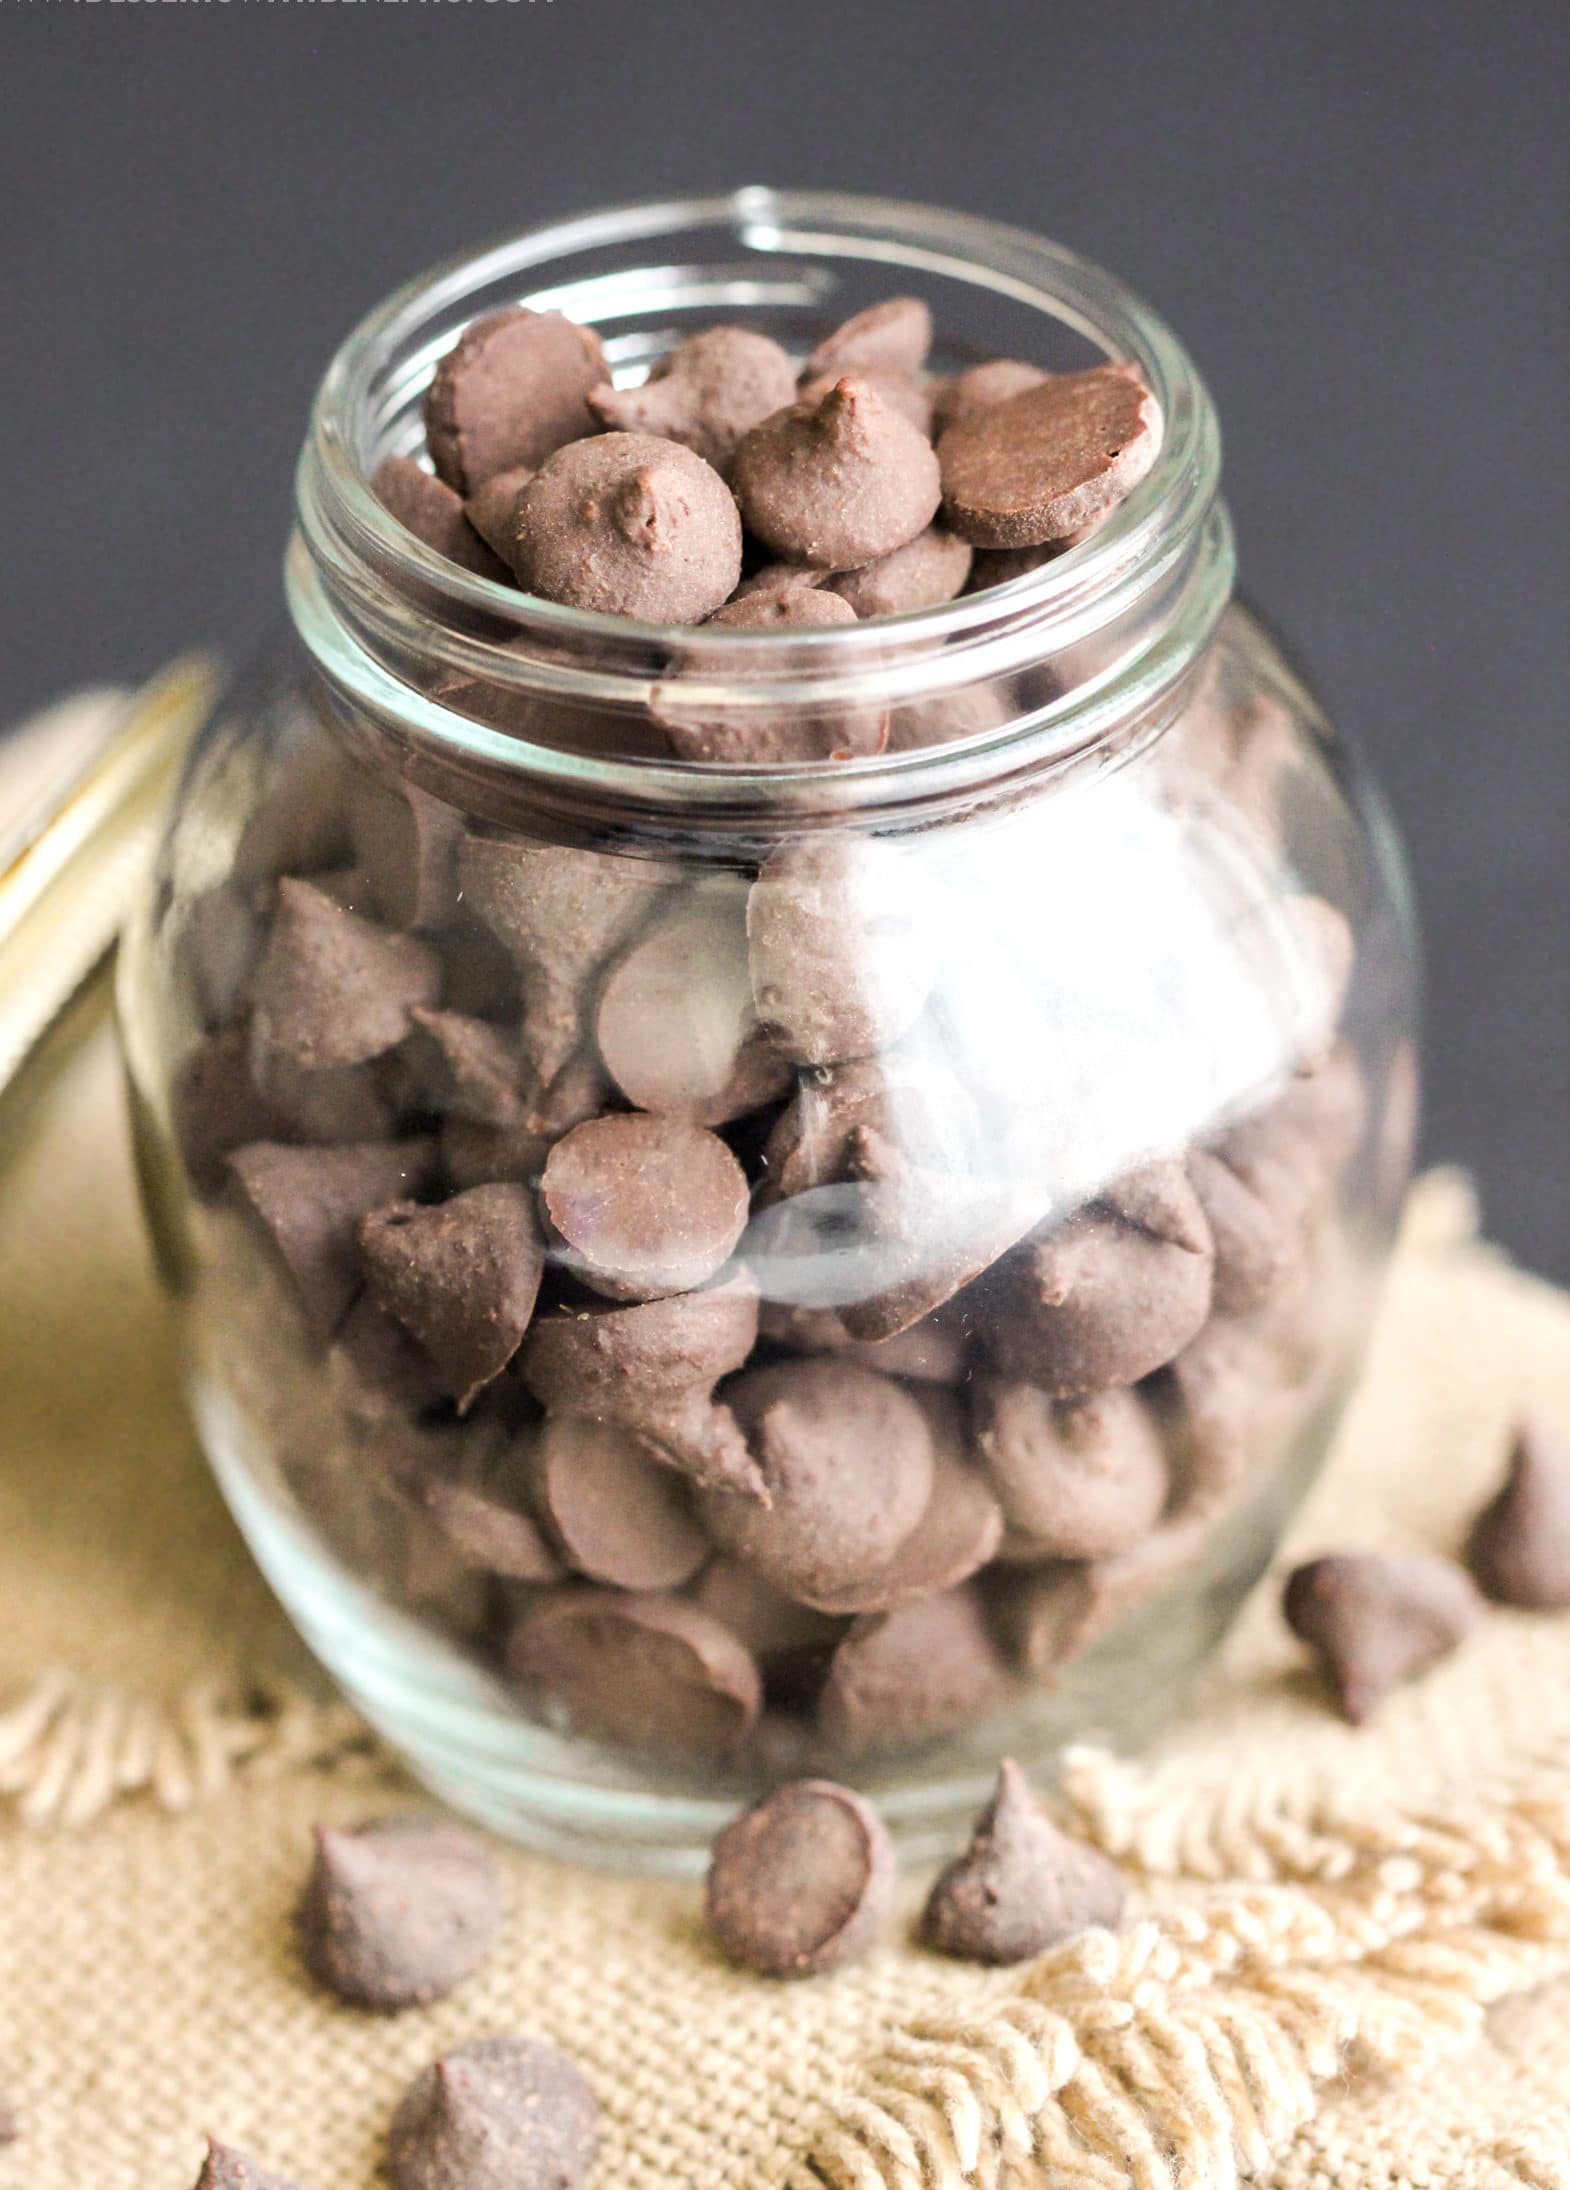 These Healthy Nutella Baking Chips are like chocolate chips but BETTER! They're like chocolate chips on crack. The chocolate and Nutella combine to make the most decadent and satisfying chocolate-hazelnut chips one can wish for! Healthy Dessert Recipes at Desserts with Benefits